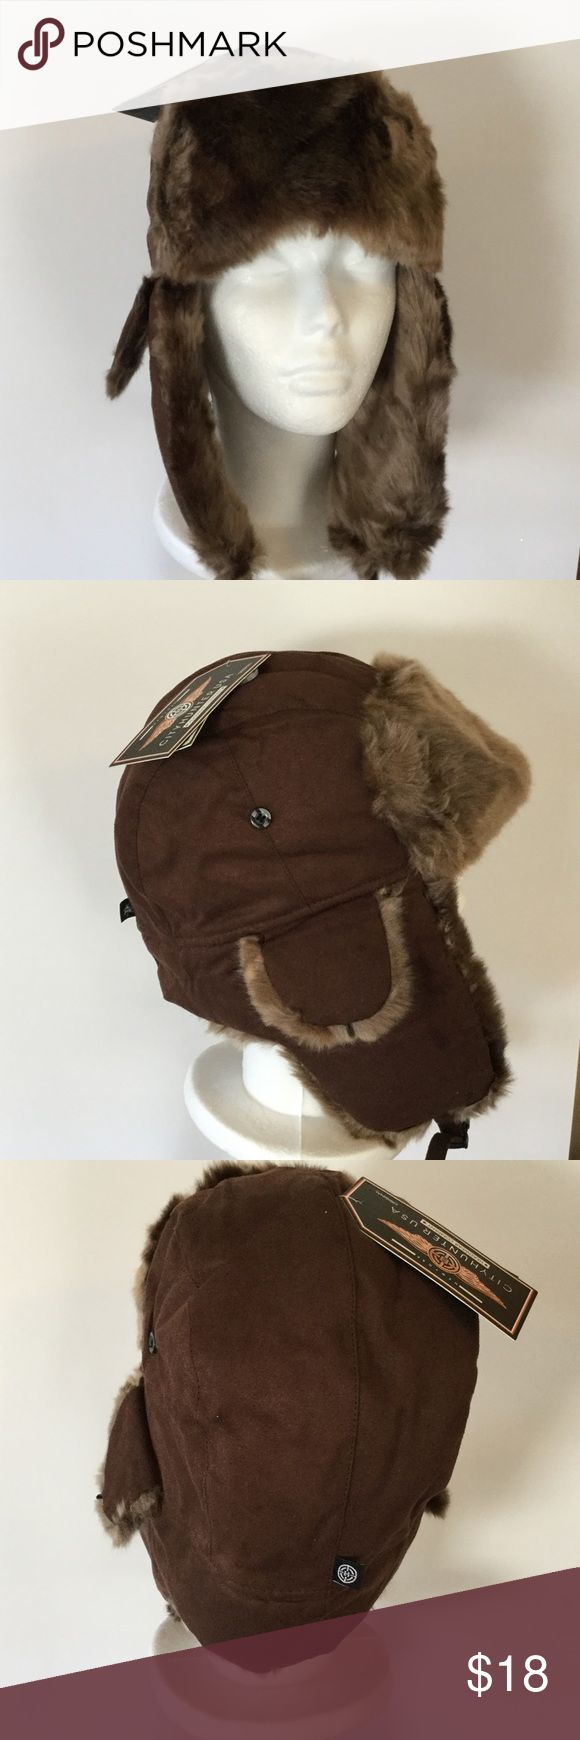 Faux Fur Trapper Hat Too cute, faux fur trapper hat, fall and winter are just around the corner, inside is fur and quilted lining for snuggly comfort City Hunter Accessories Hats